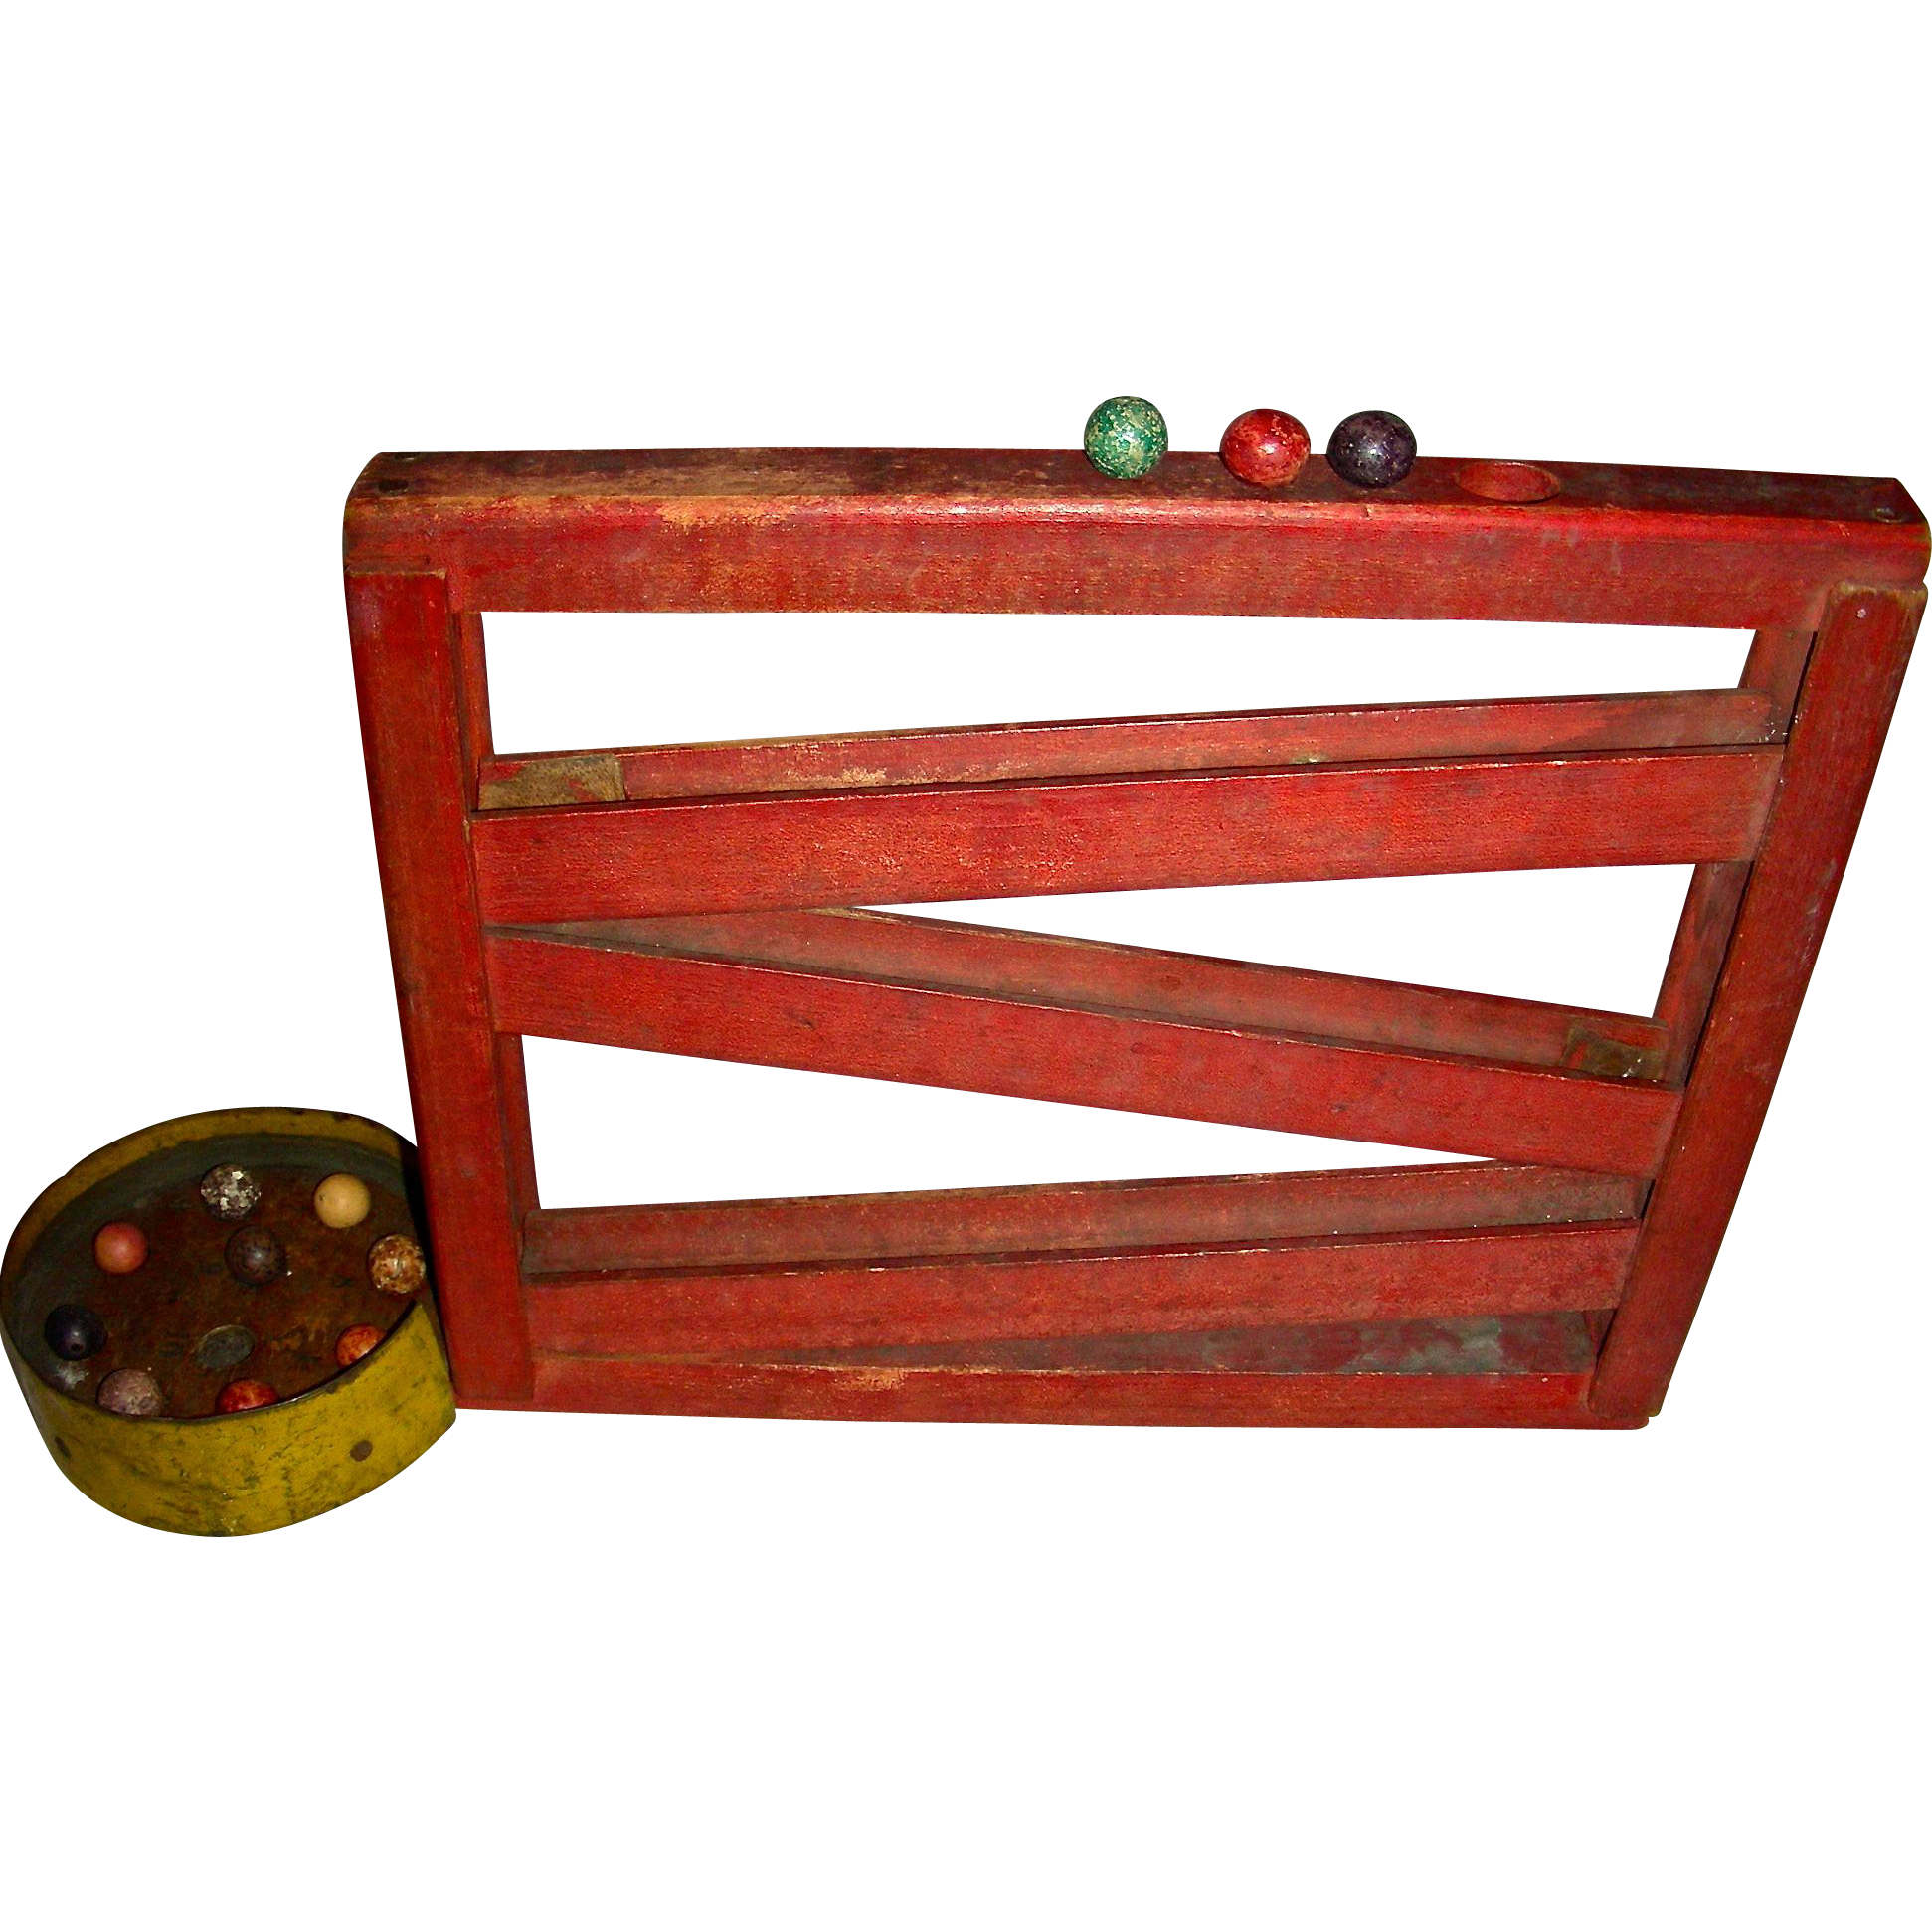 Early 20th Century Wooden Marble Ramp Game w/ Marbles